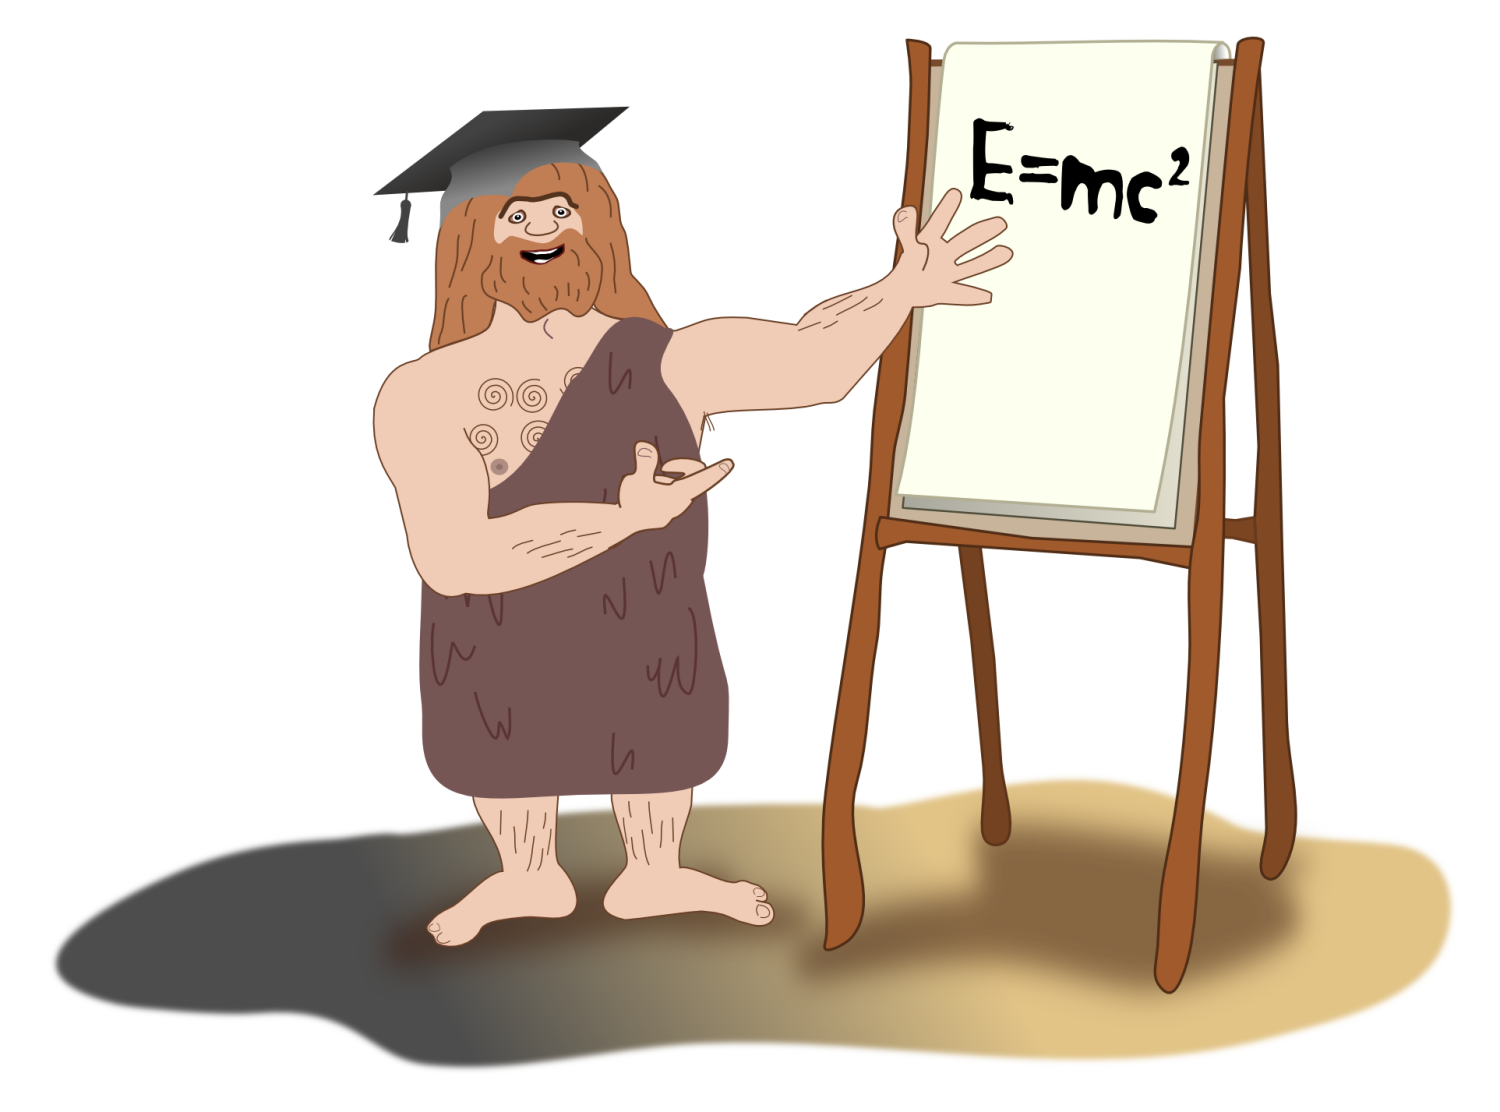 Illustration of caveman in business presentation from Online Sales Training Modules, Limelight Learning UK